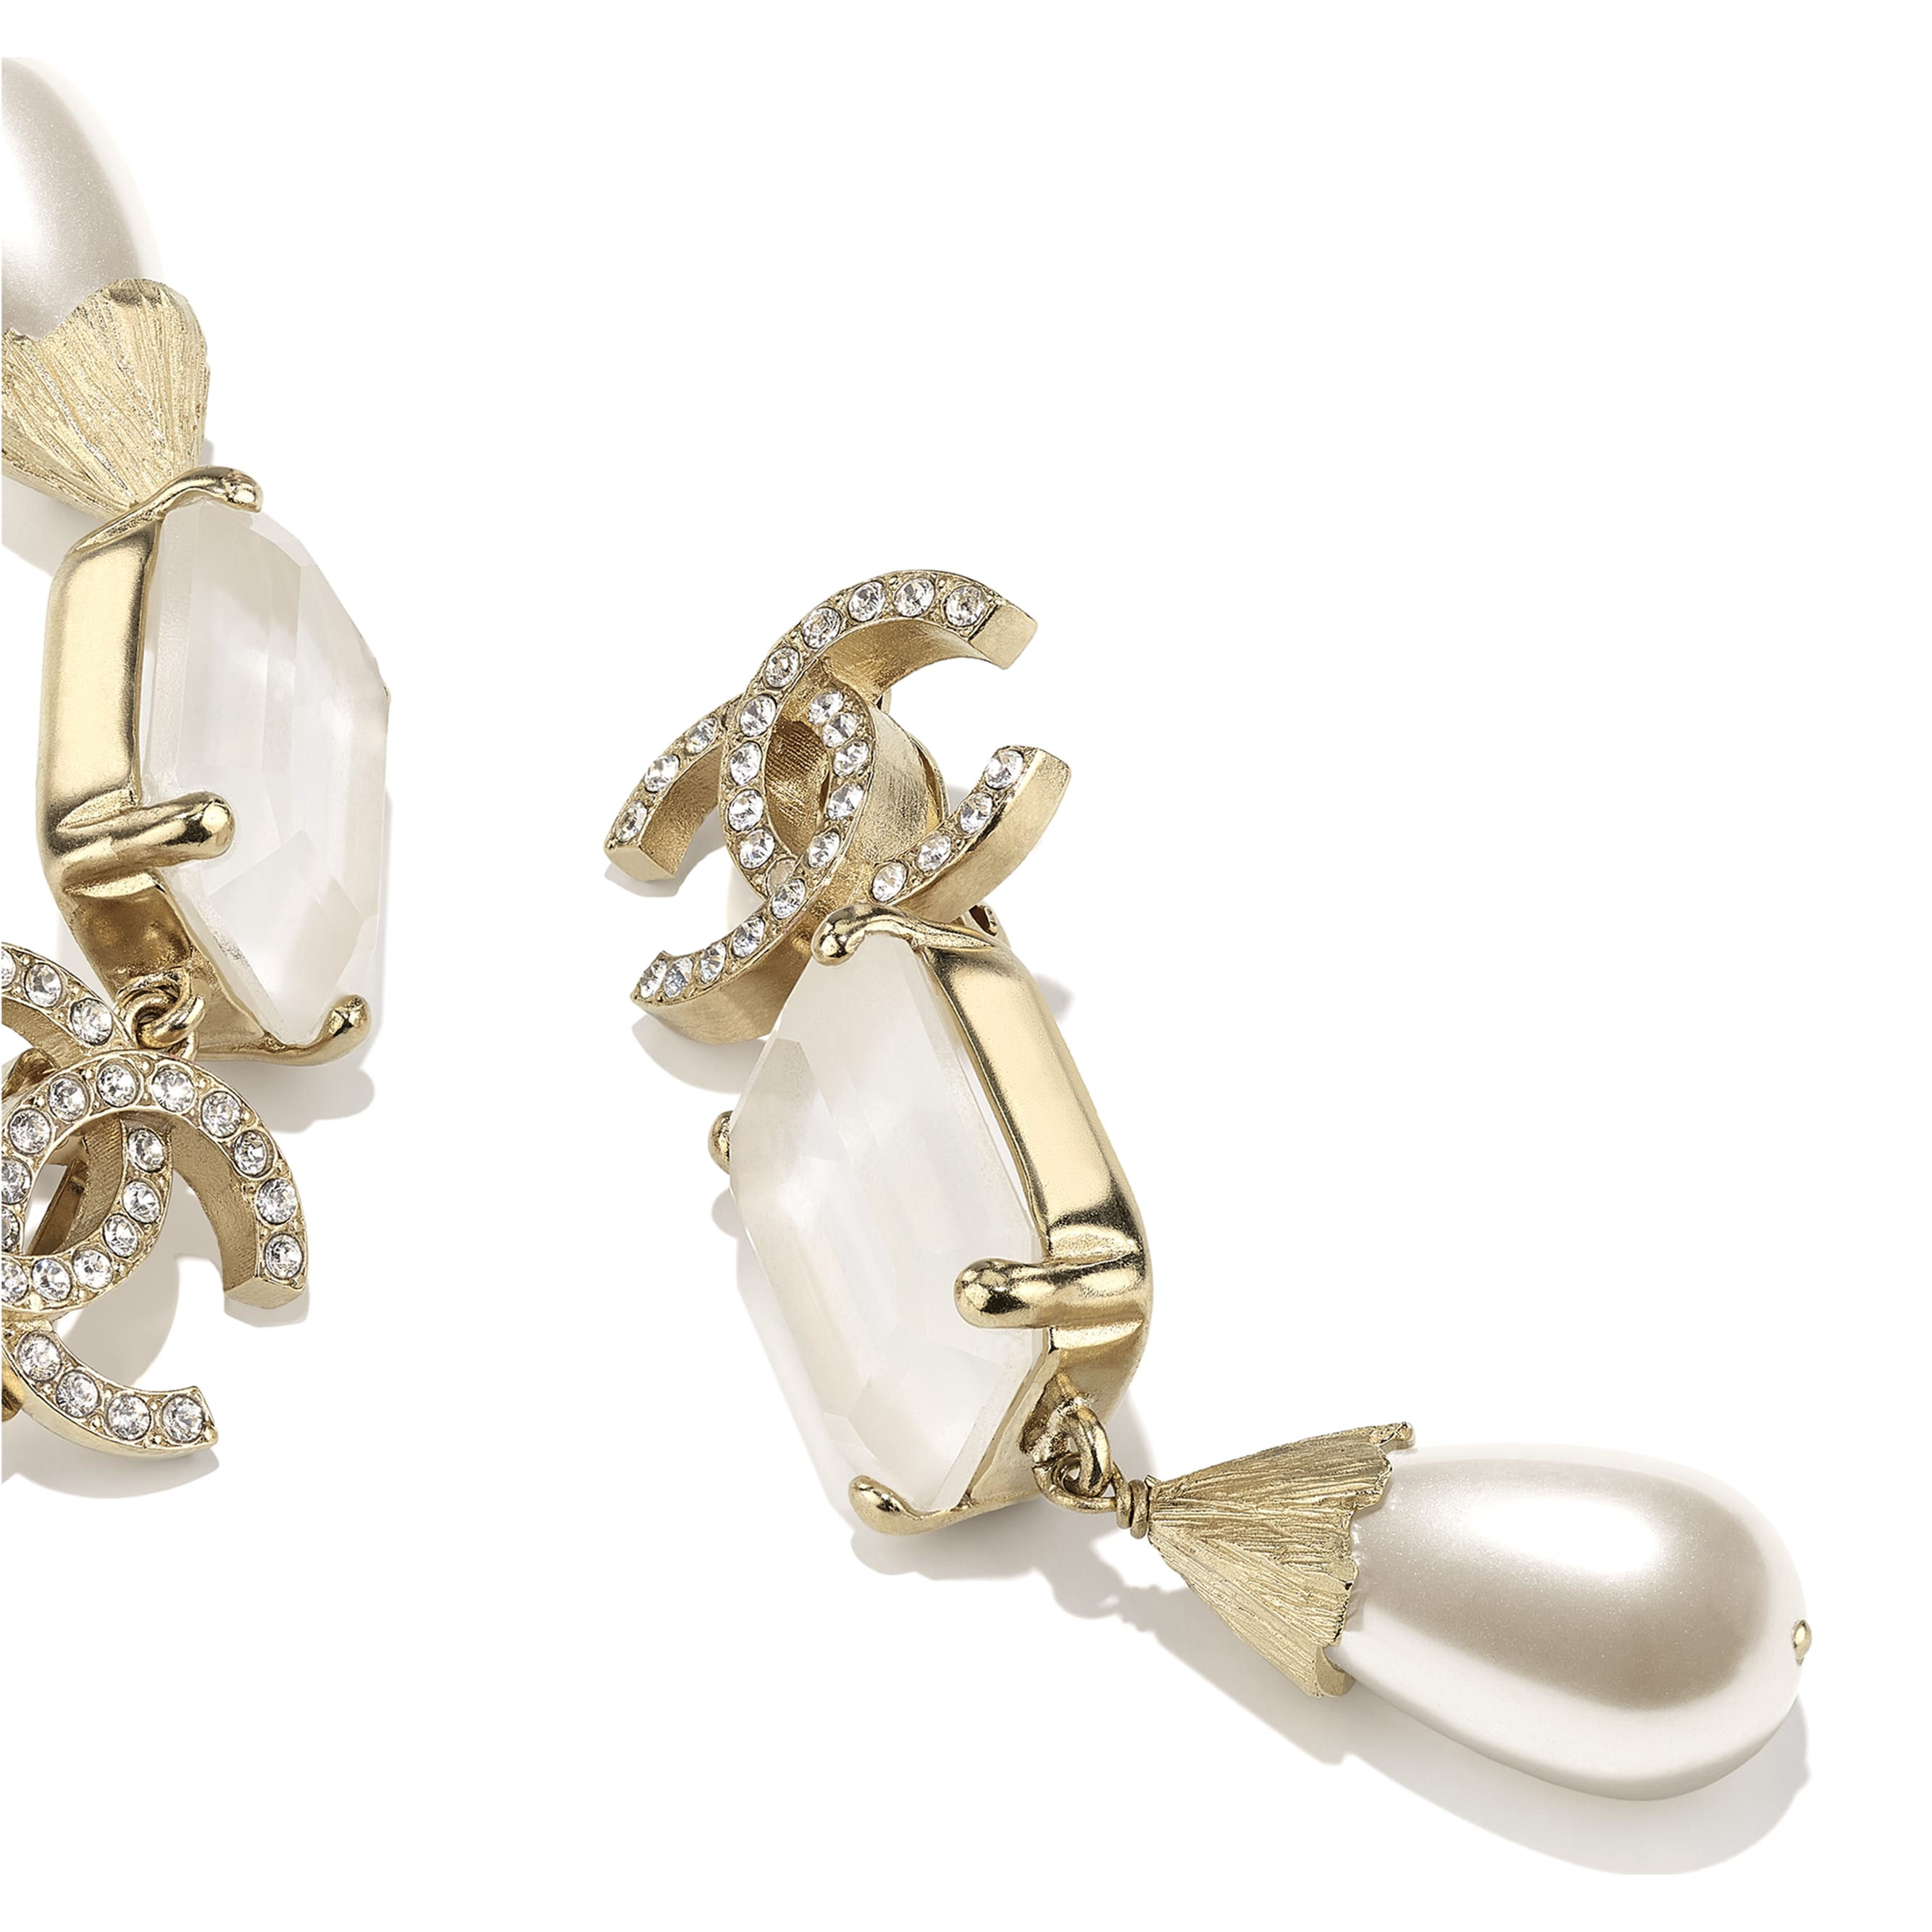 Earrings - Gold, Pearly White, White & Crystal - Metal, Imitation Pearls & Strass - CHANEL - Alternative view - see standard sized version